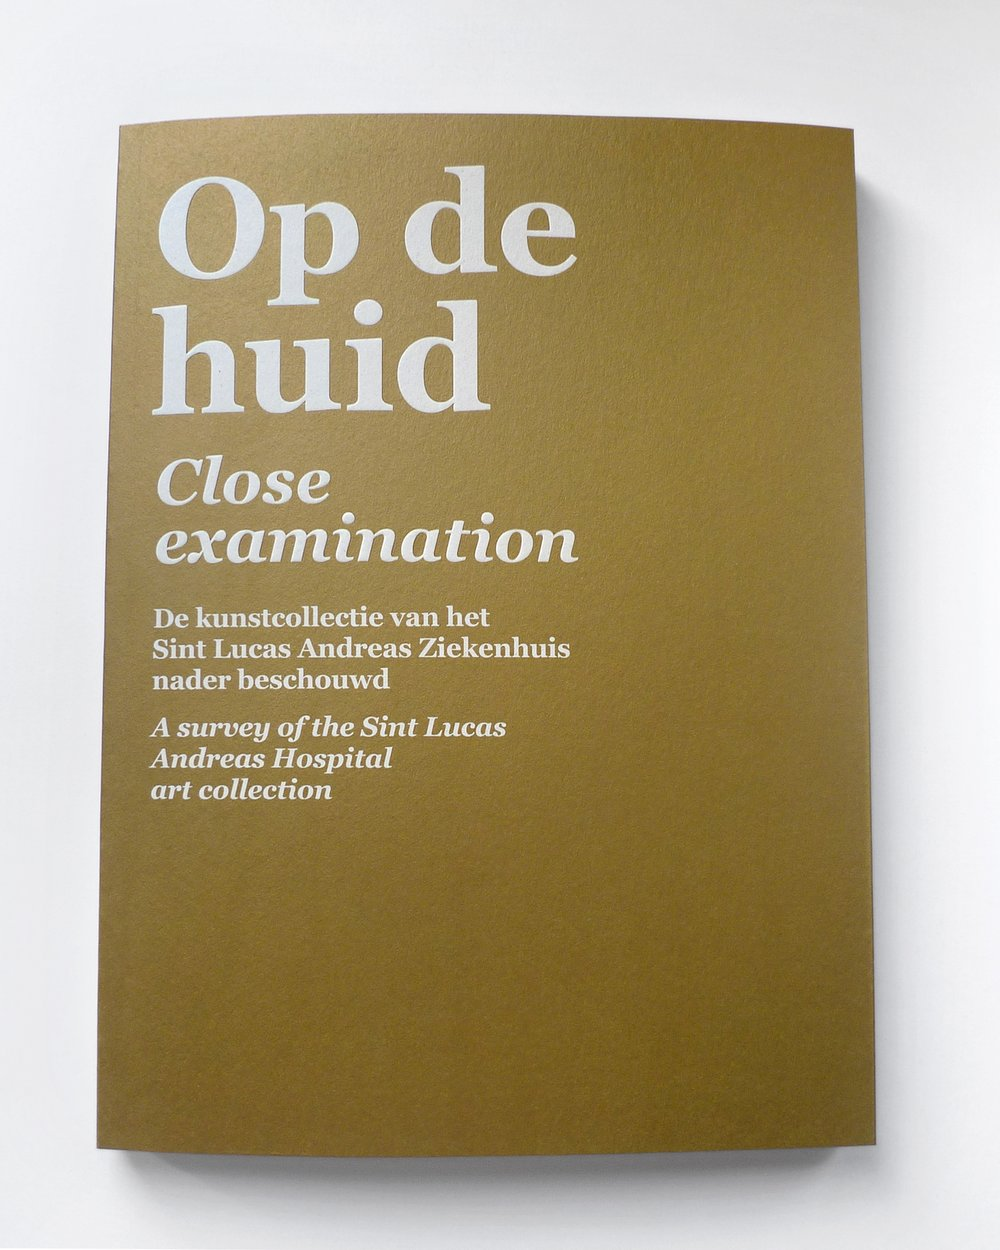 studio_colorado-op_de_huid-cover